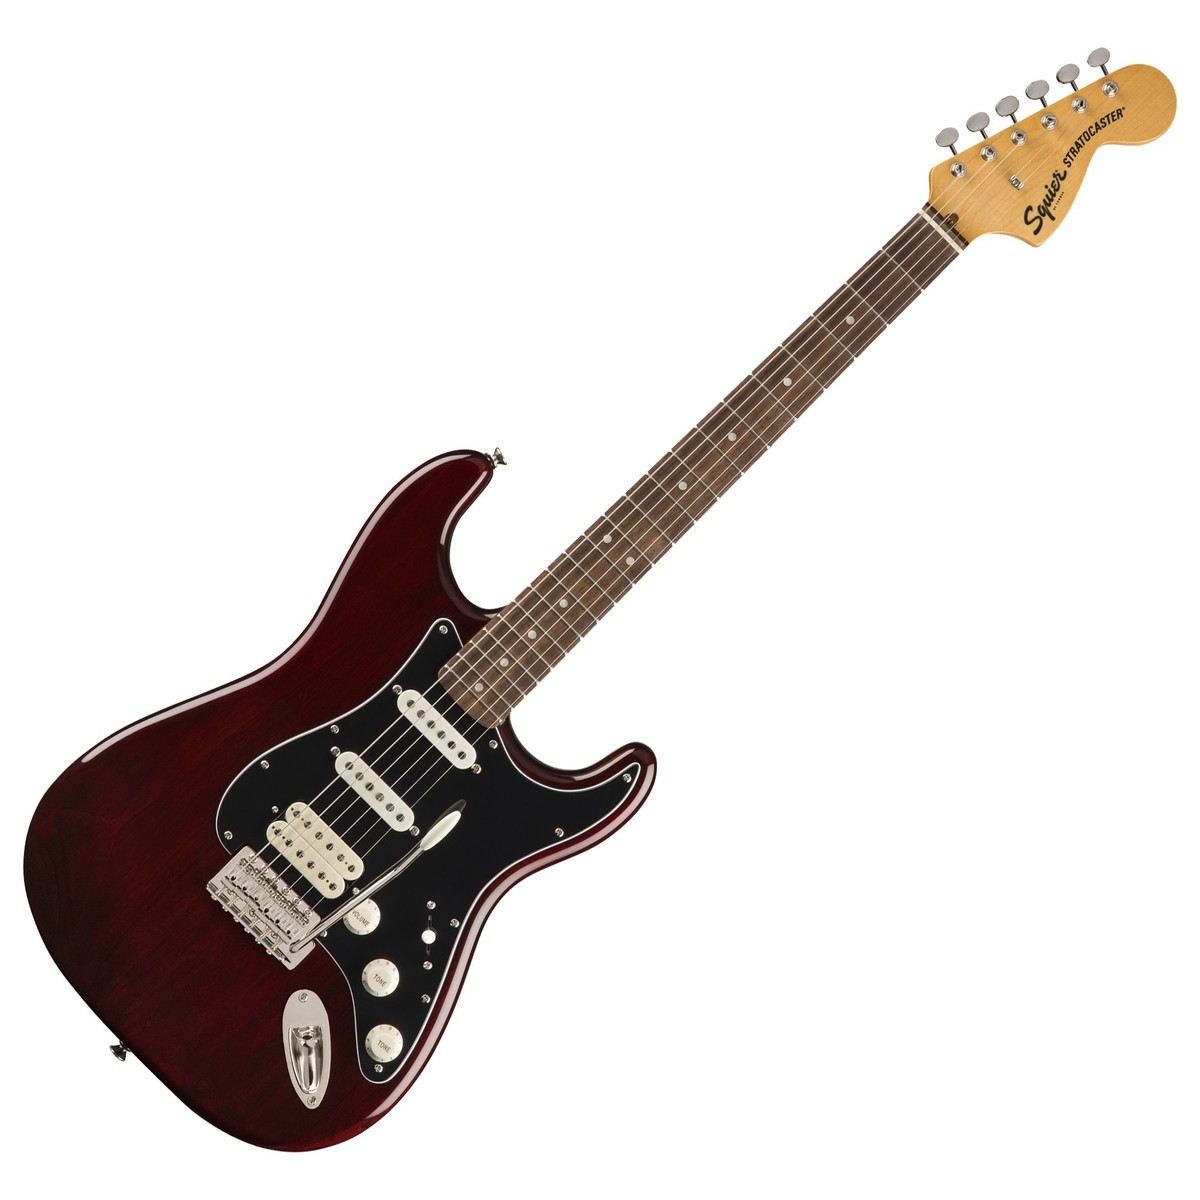 squier classic vibe 70s stratocaster hss lrl walnut at gear4music. Black Bedroom Furniture Sets. Home Design Ideas